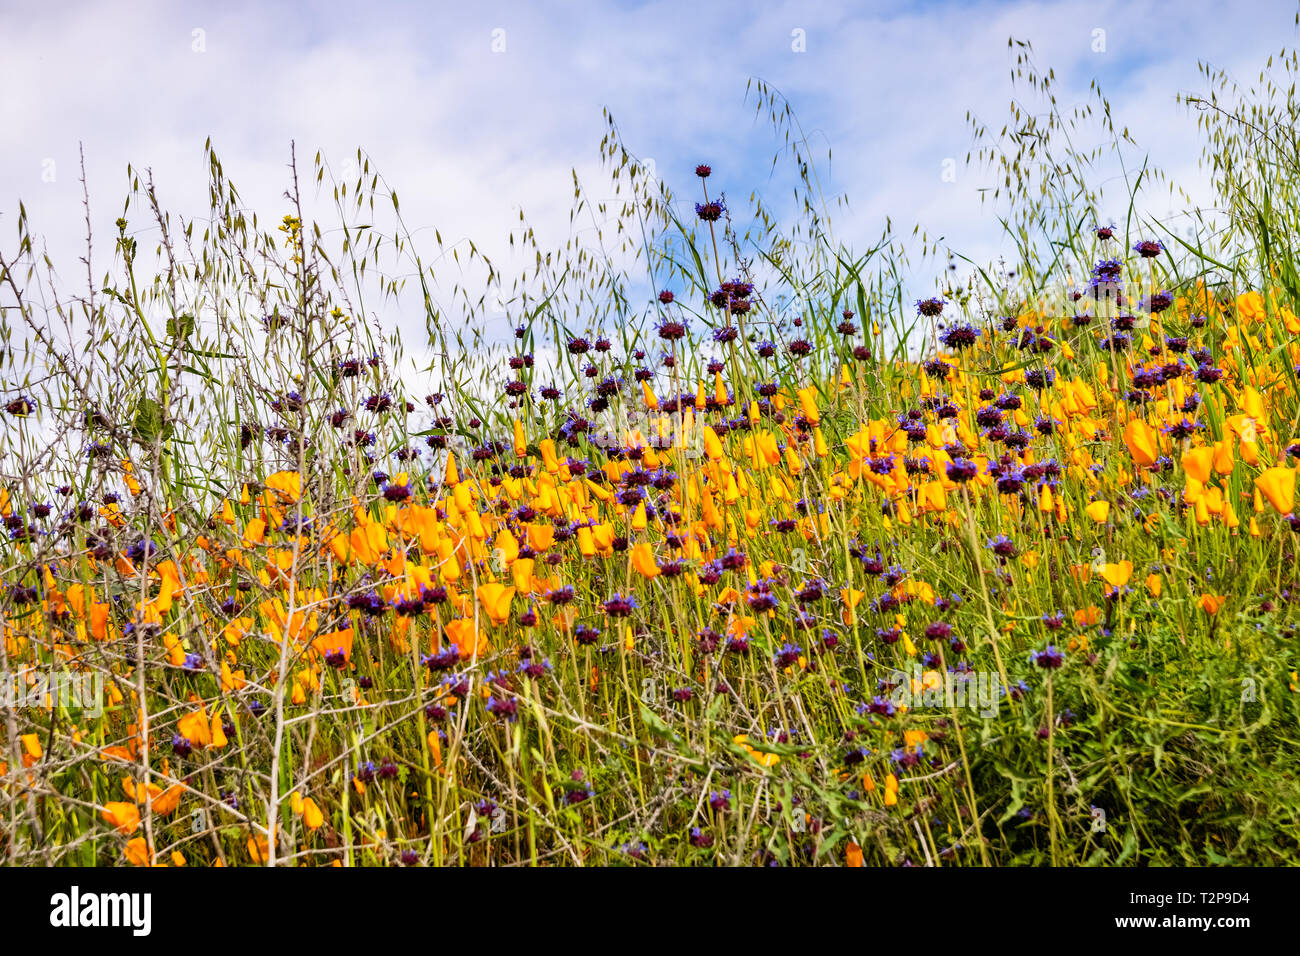 California poppies (Eschscholzia californica) and Chia (Salvia hispanica) blooming on the hills of Walker Canyon during the superbloom, Lake Elsinore, - Stock Image